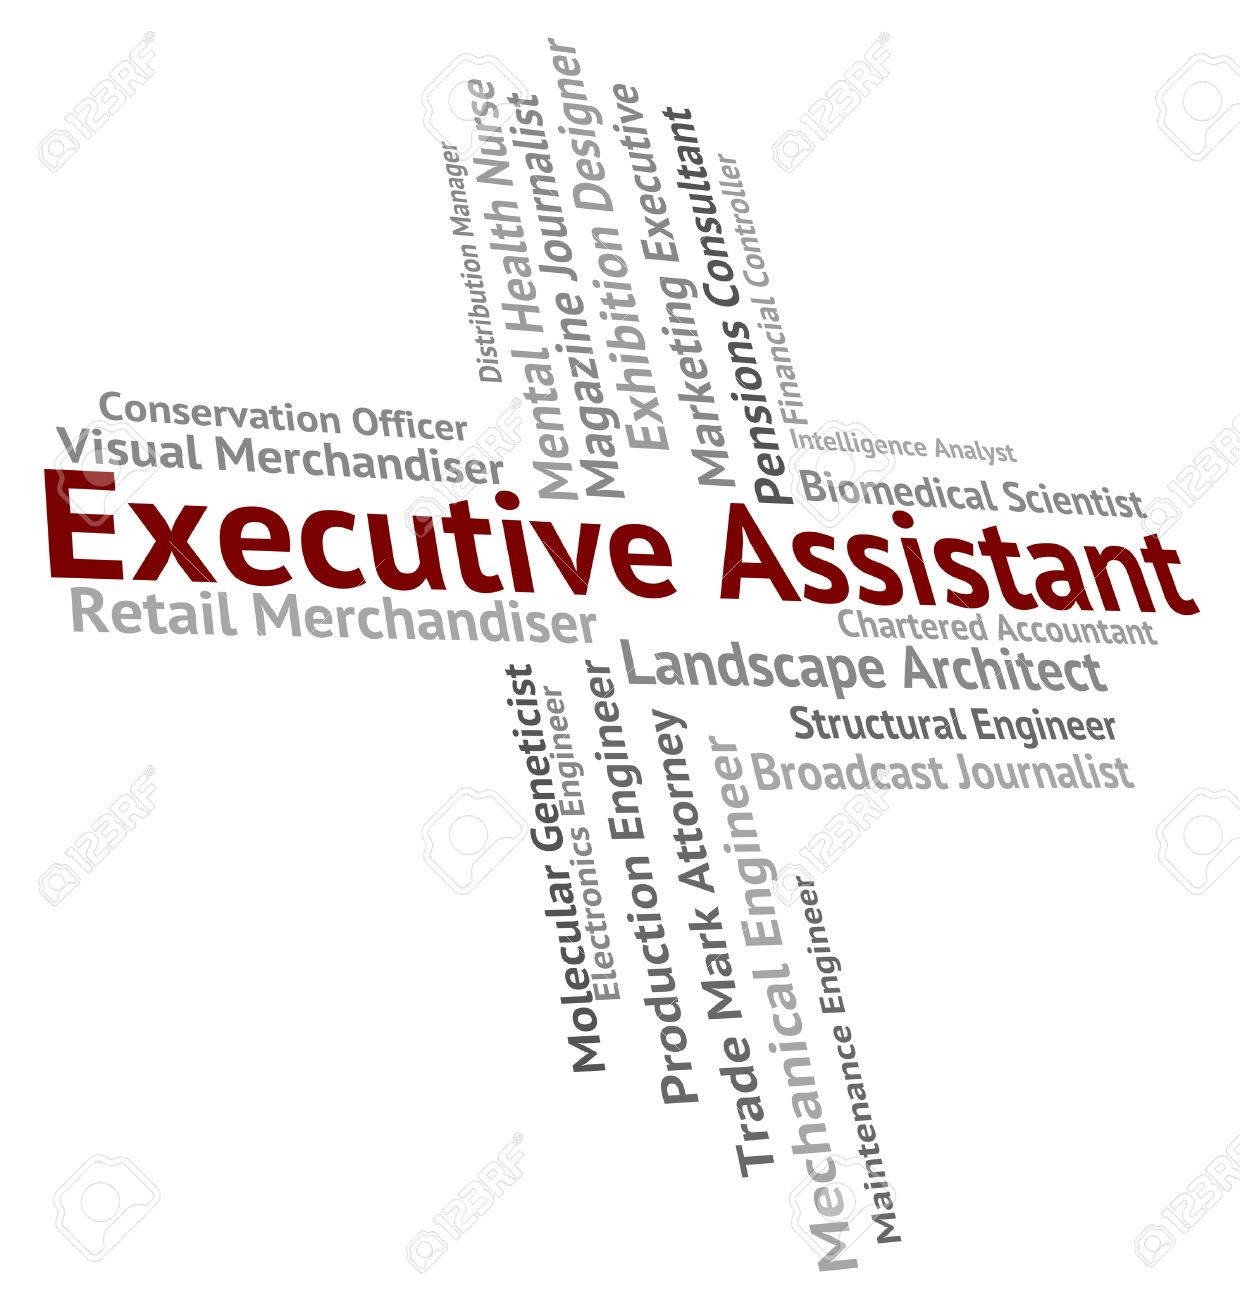 How COA training helps to become an executive personal assistant